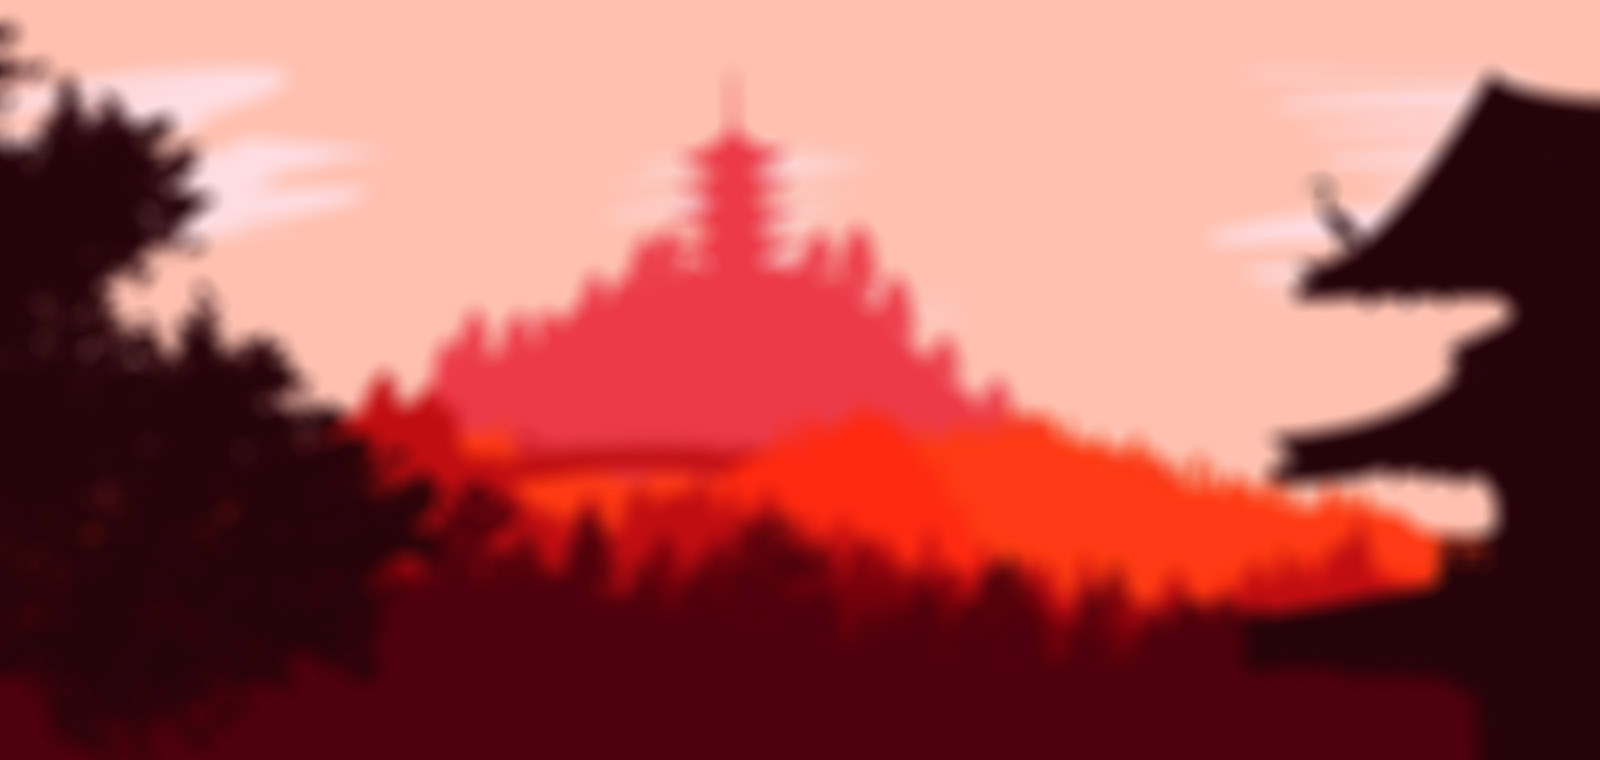 blurred oriental background